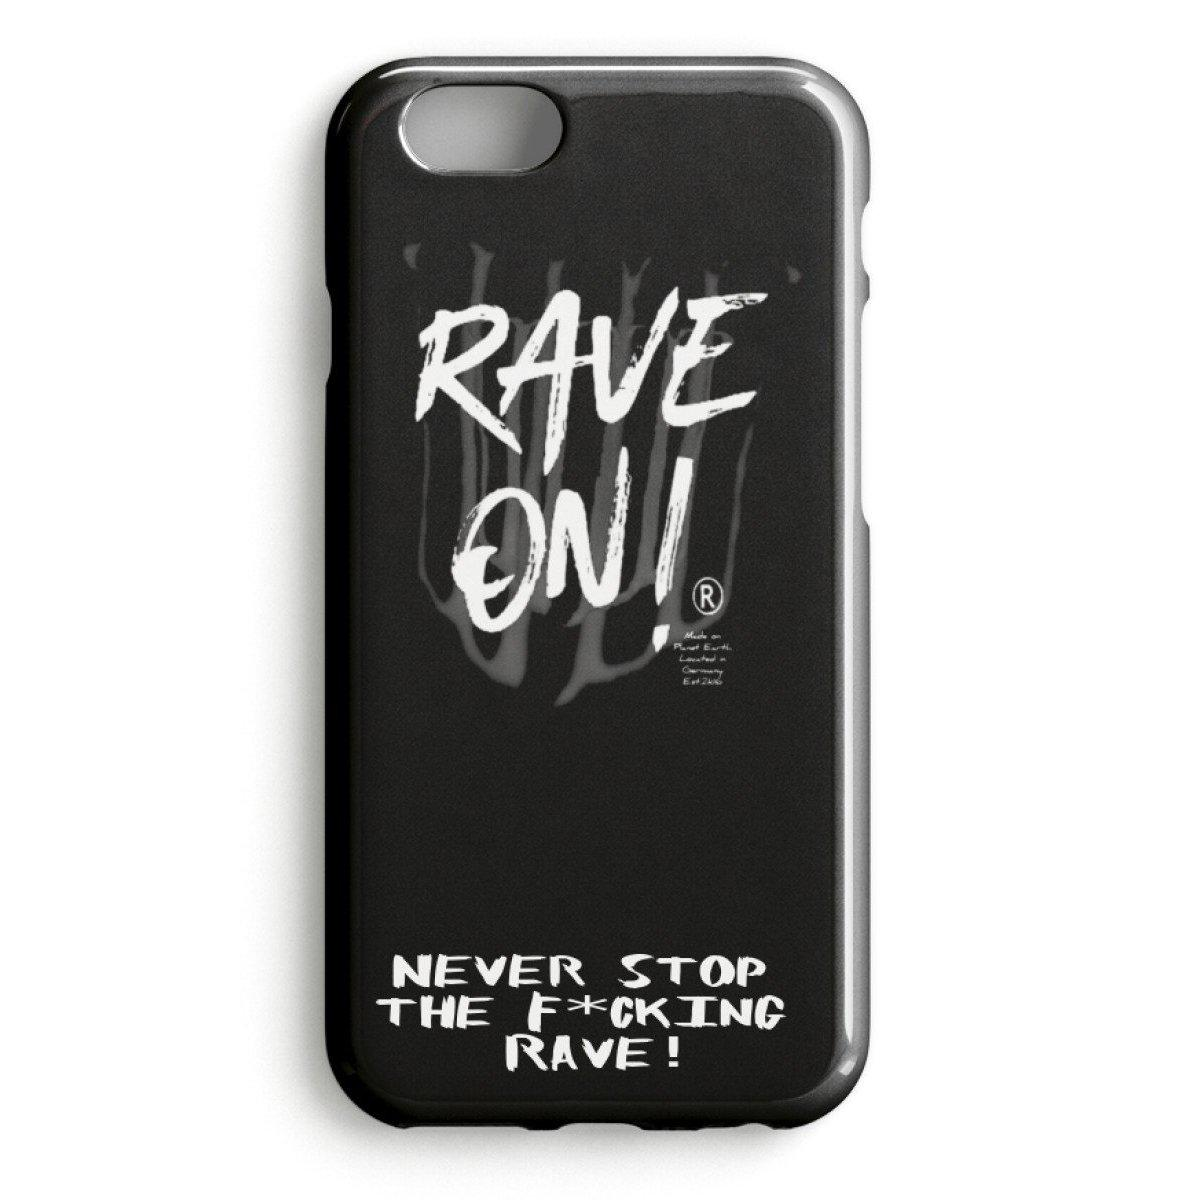 Rave On!® - Mobile Case B2k16 and NSTFR - Handyhülle Premium Case Handyhülle Premium Case Black / iPhone X - Rave On!® der Club & Techno Szene Shop für Coole Junge Mode Streetwear Style & Fashion Outfits + Sexy Festival 420 Stuff